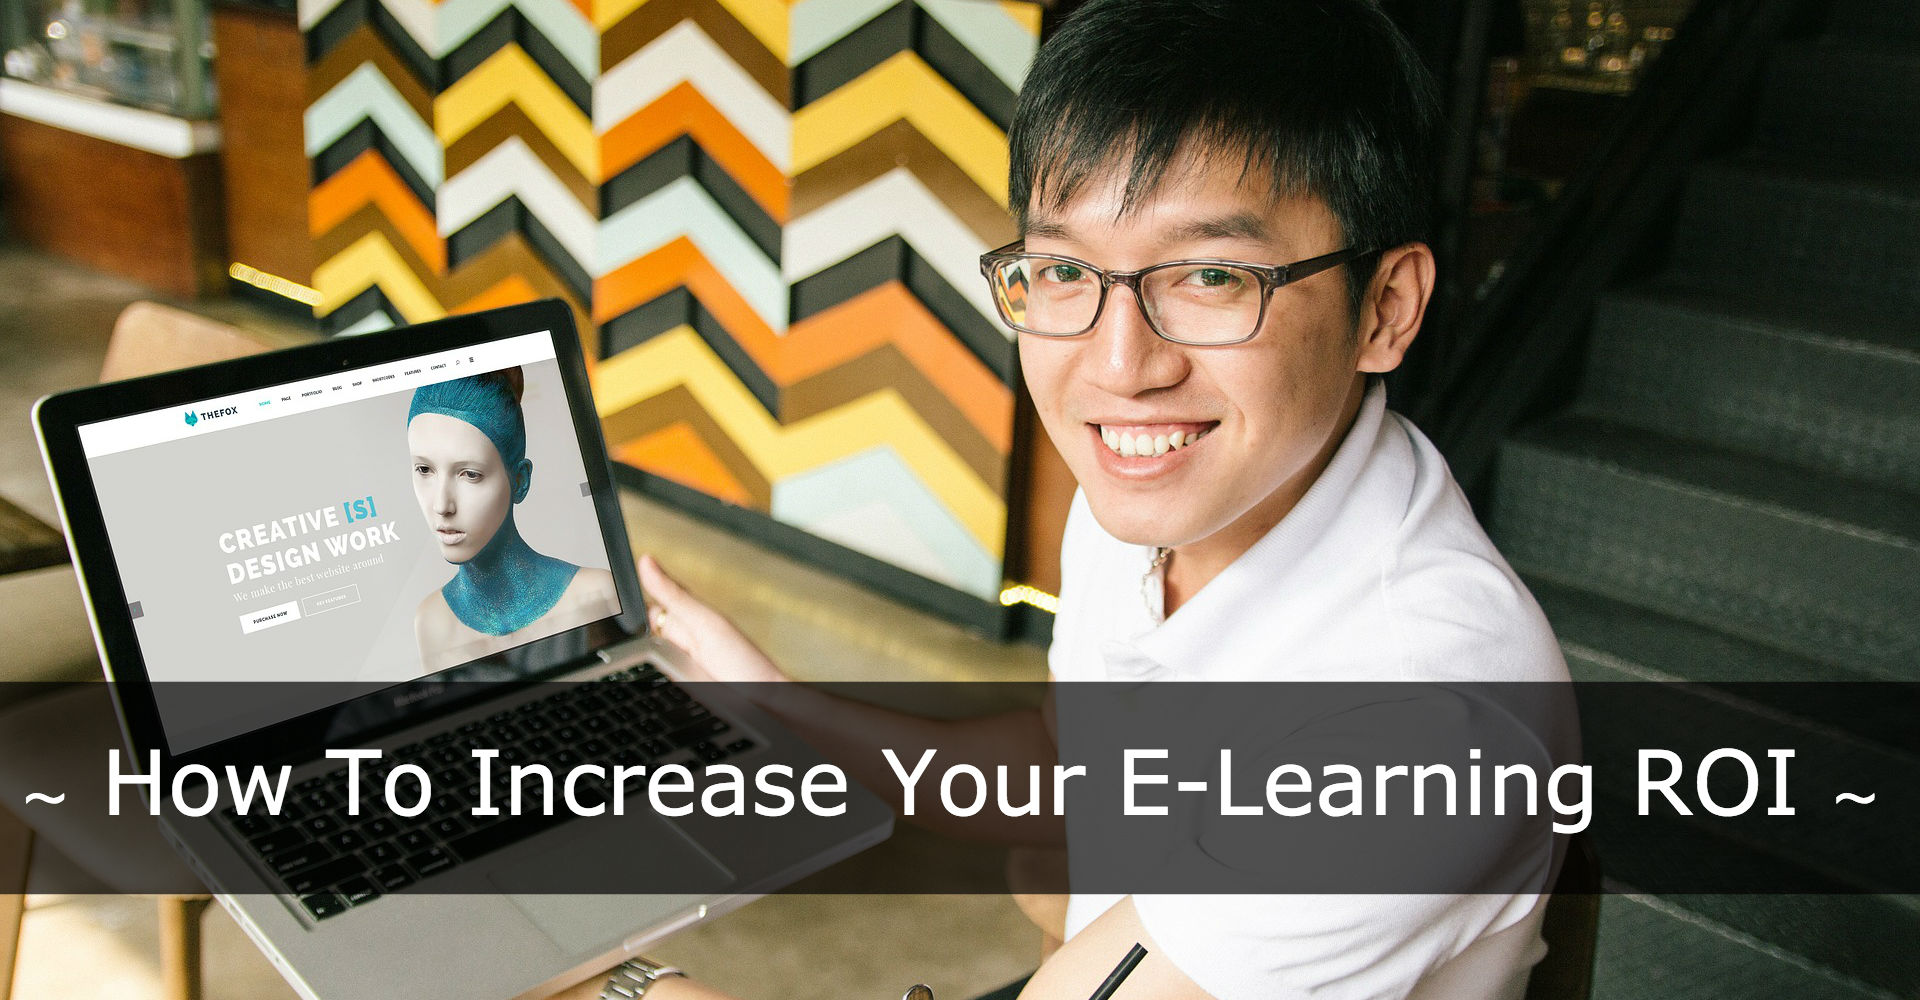 Increase Elearning ROI